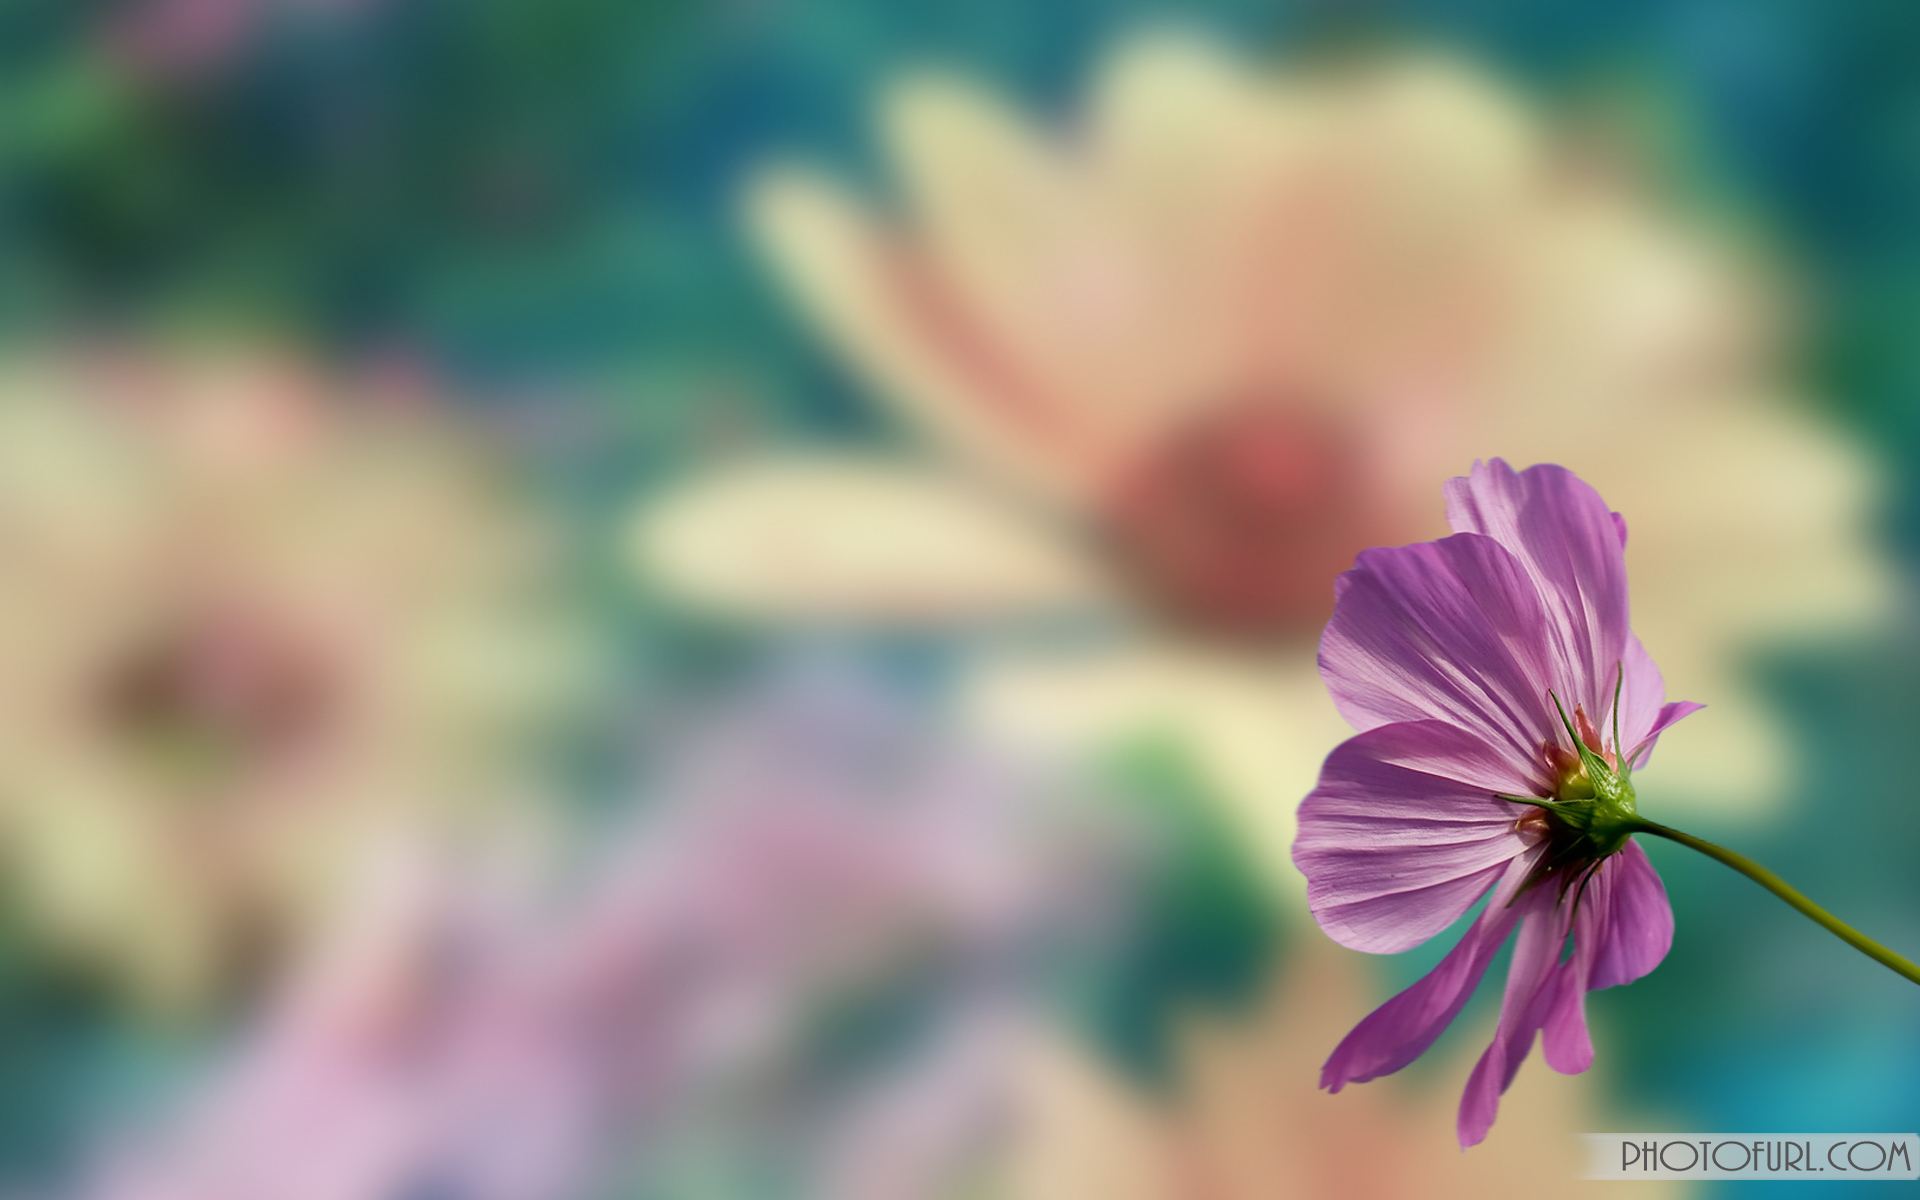 Free Colorful Flower Wallpaper Downloads: [49+] Full Screen Flower Wallpaper On WallpaperSafari